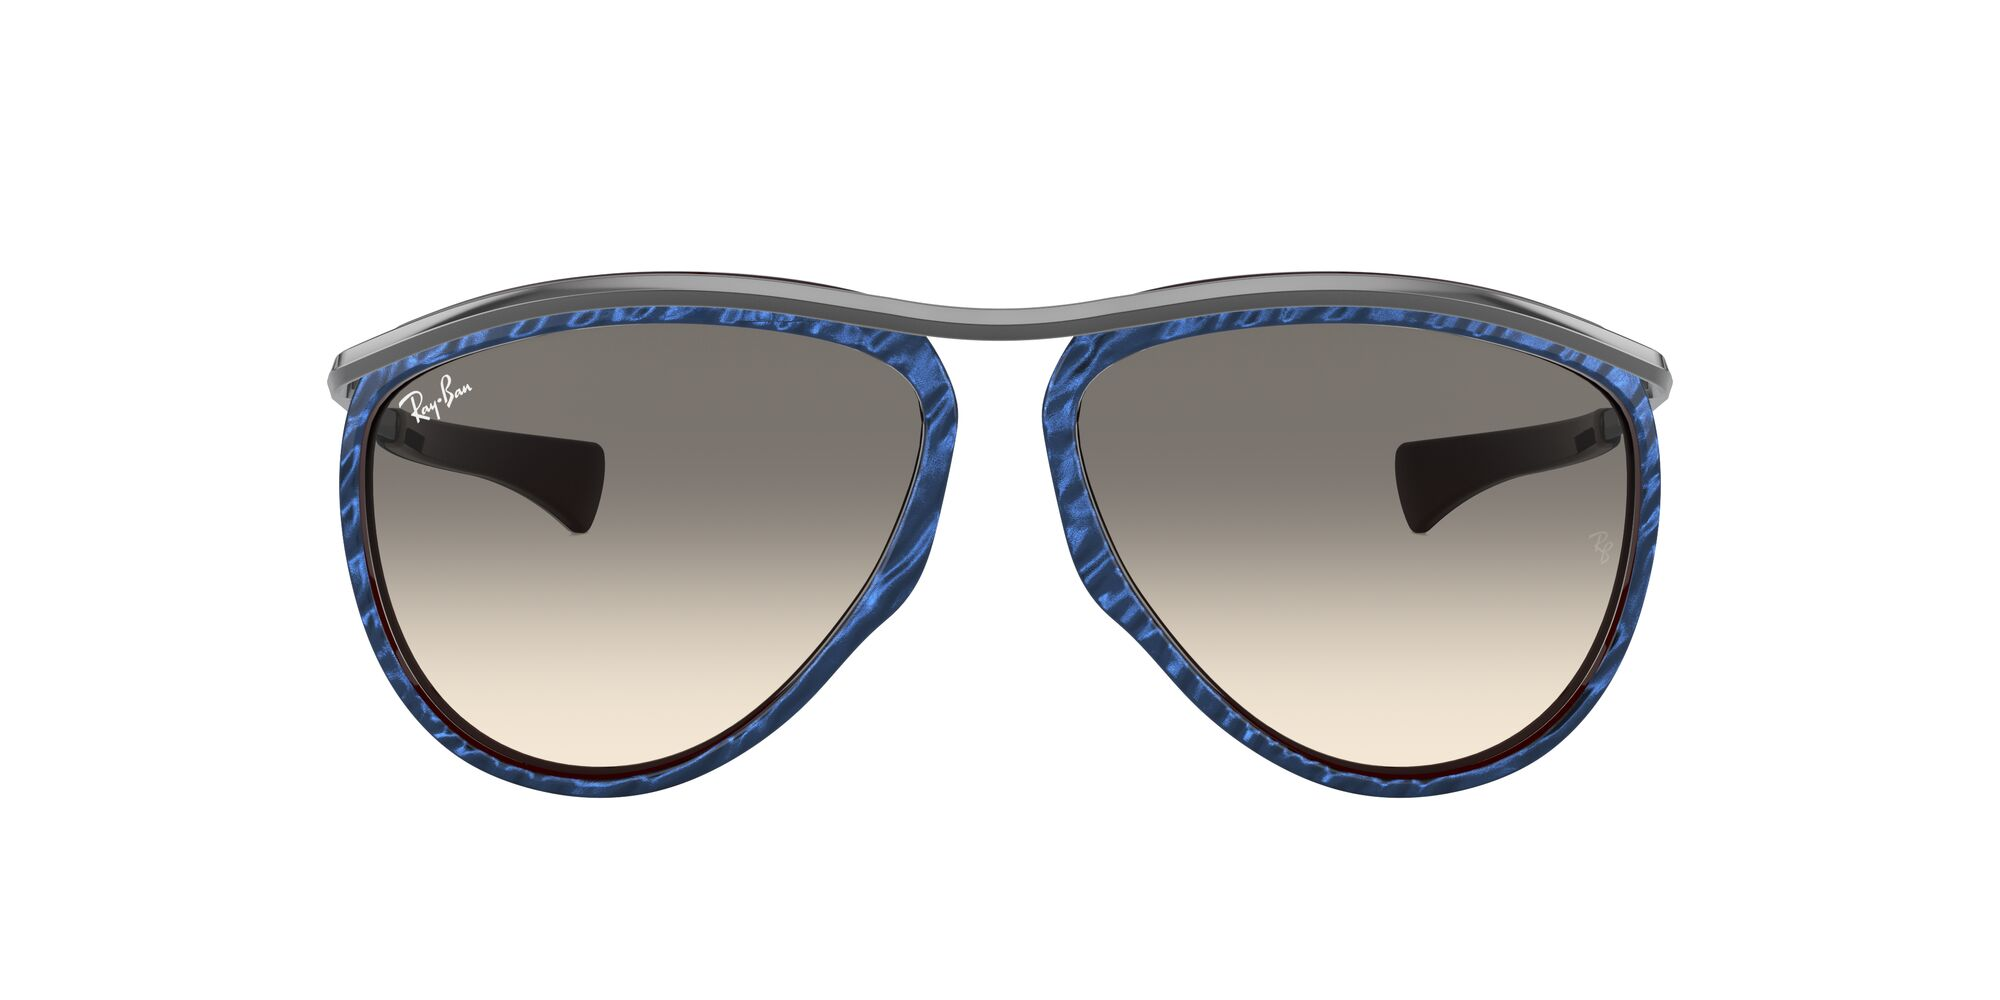 Front Ray-Ban Ray-Ban 0RB2219 131032 59/13 Blauw, Bruin/Grijs